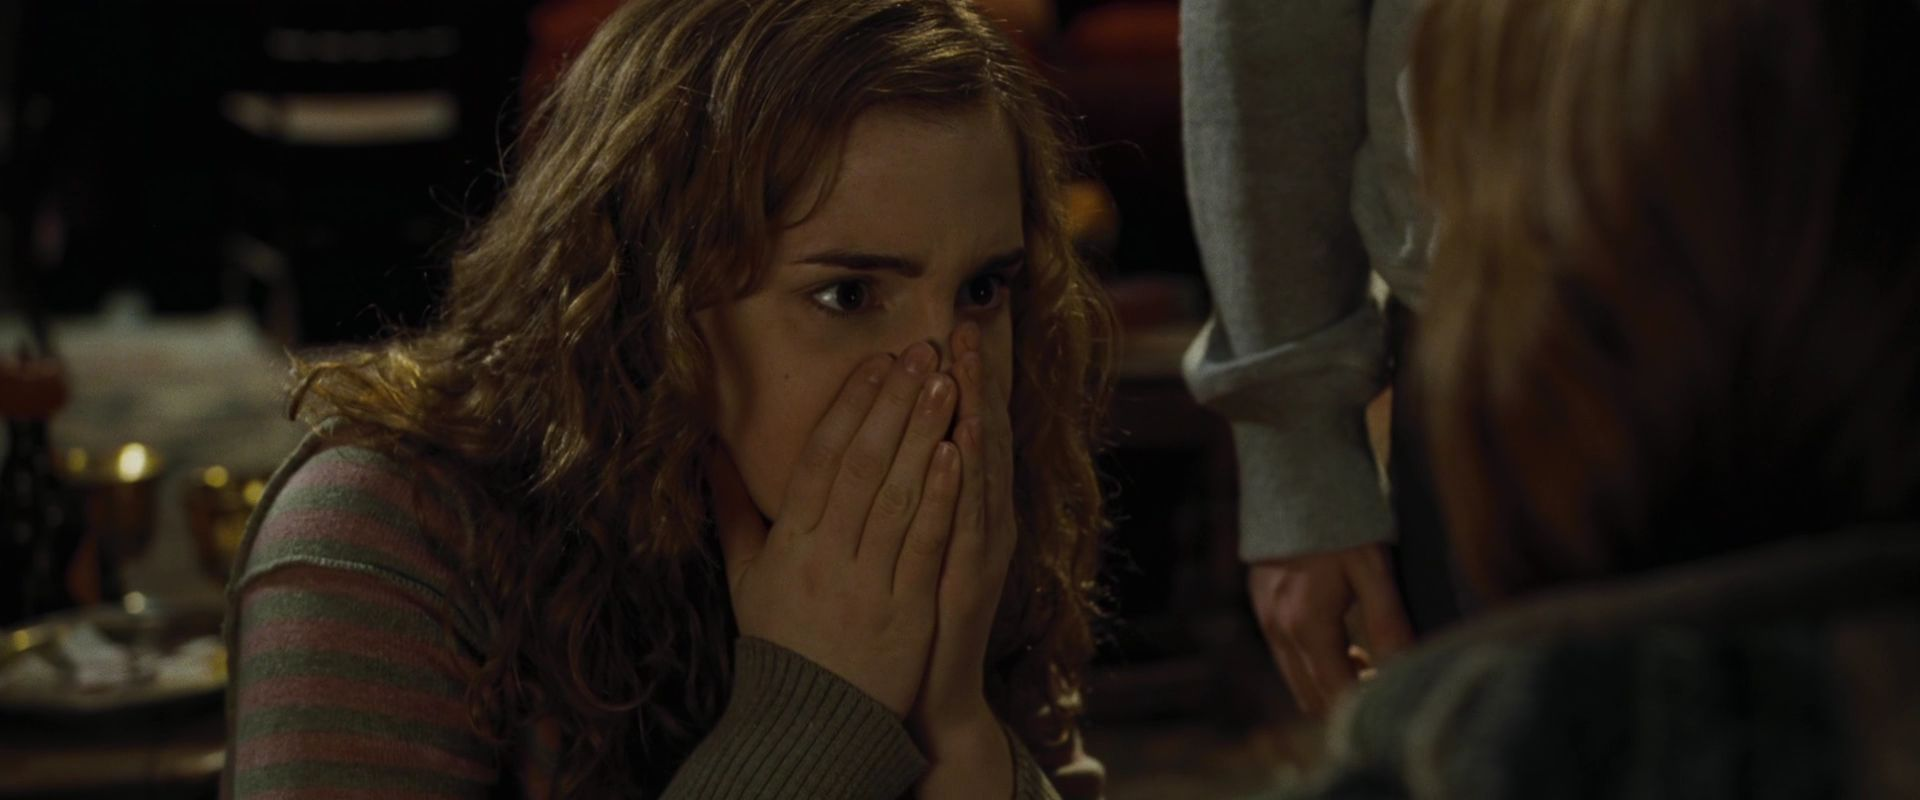 Hermione Granger Goblet of Fire Gif Hermione Goblet of Fire